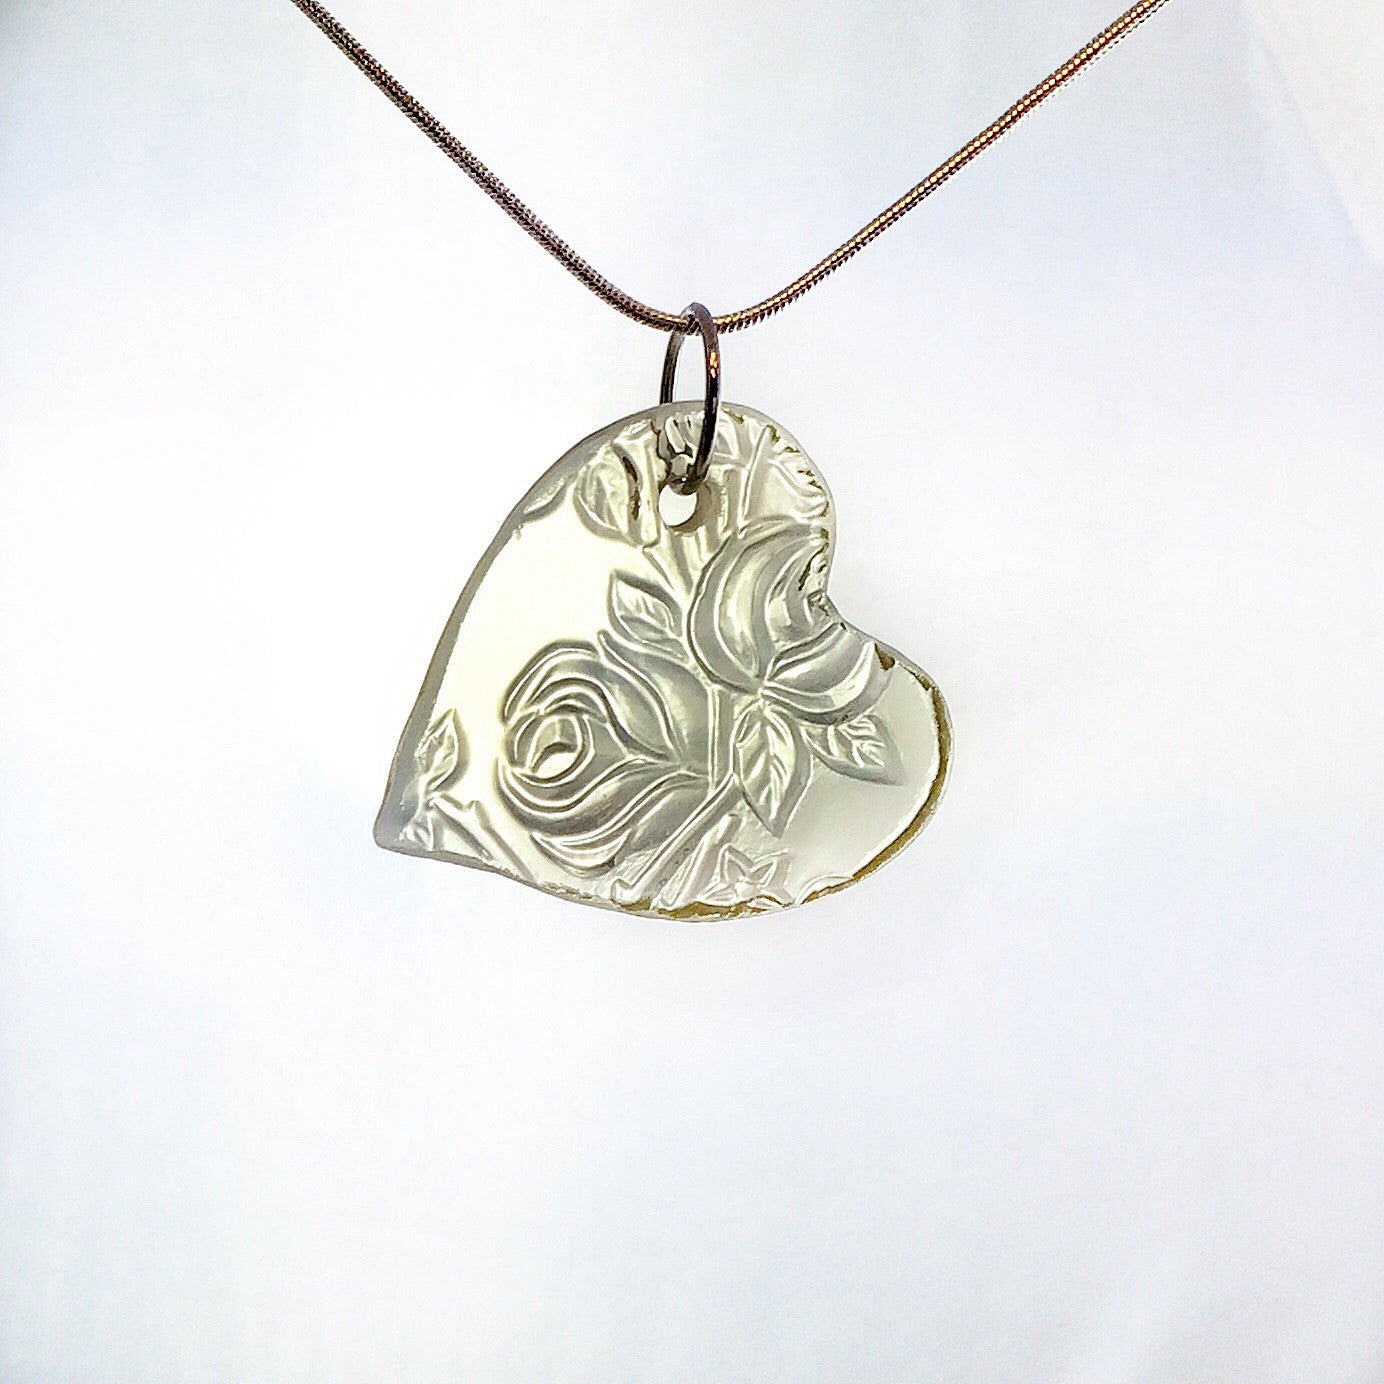 Mother's Day gift ideas- Depression glass jewelry